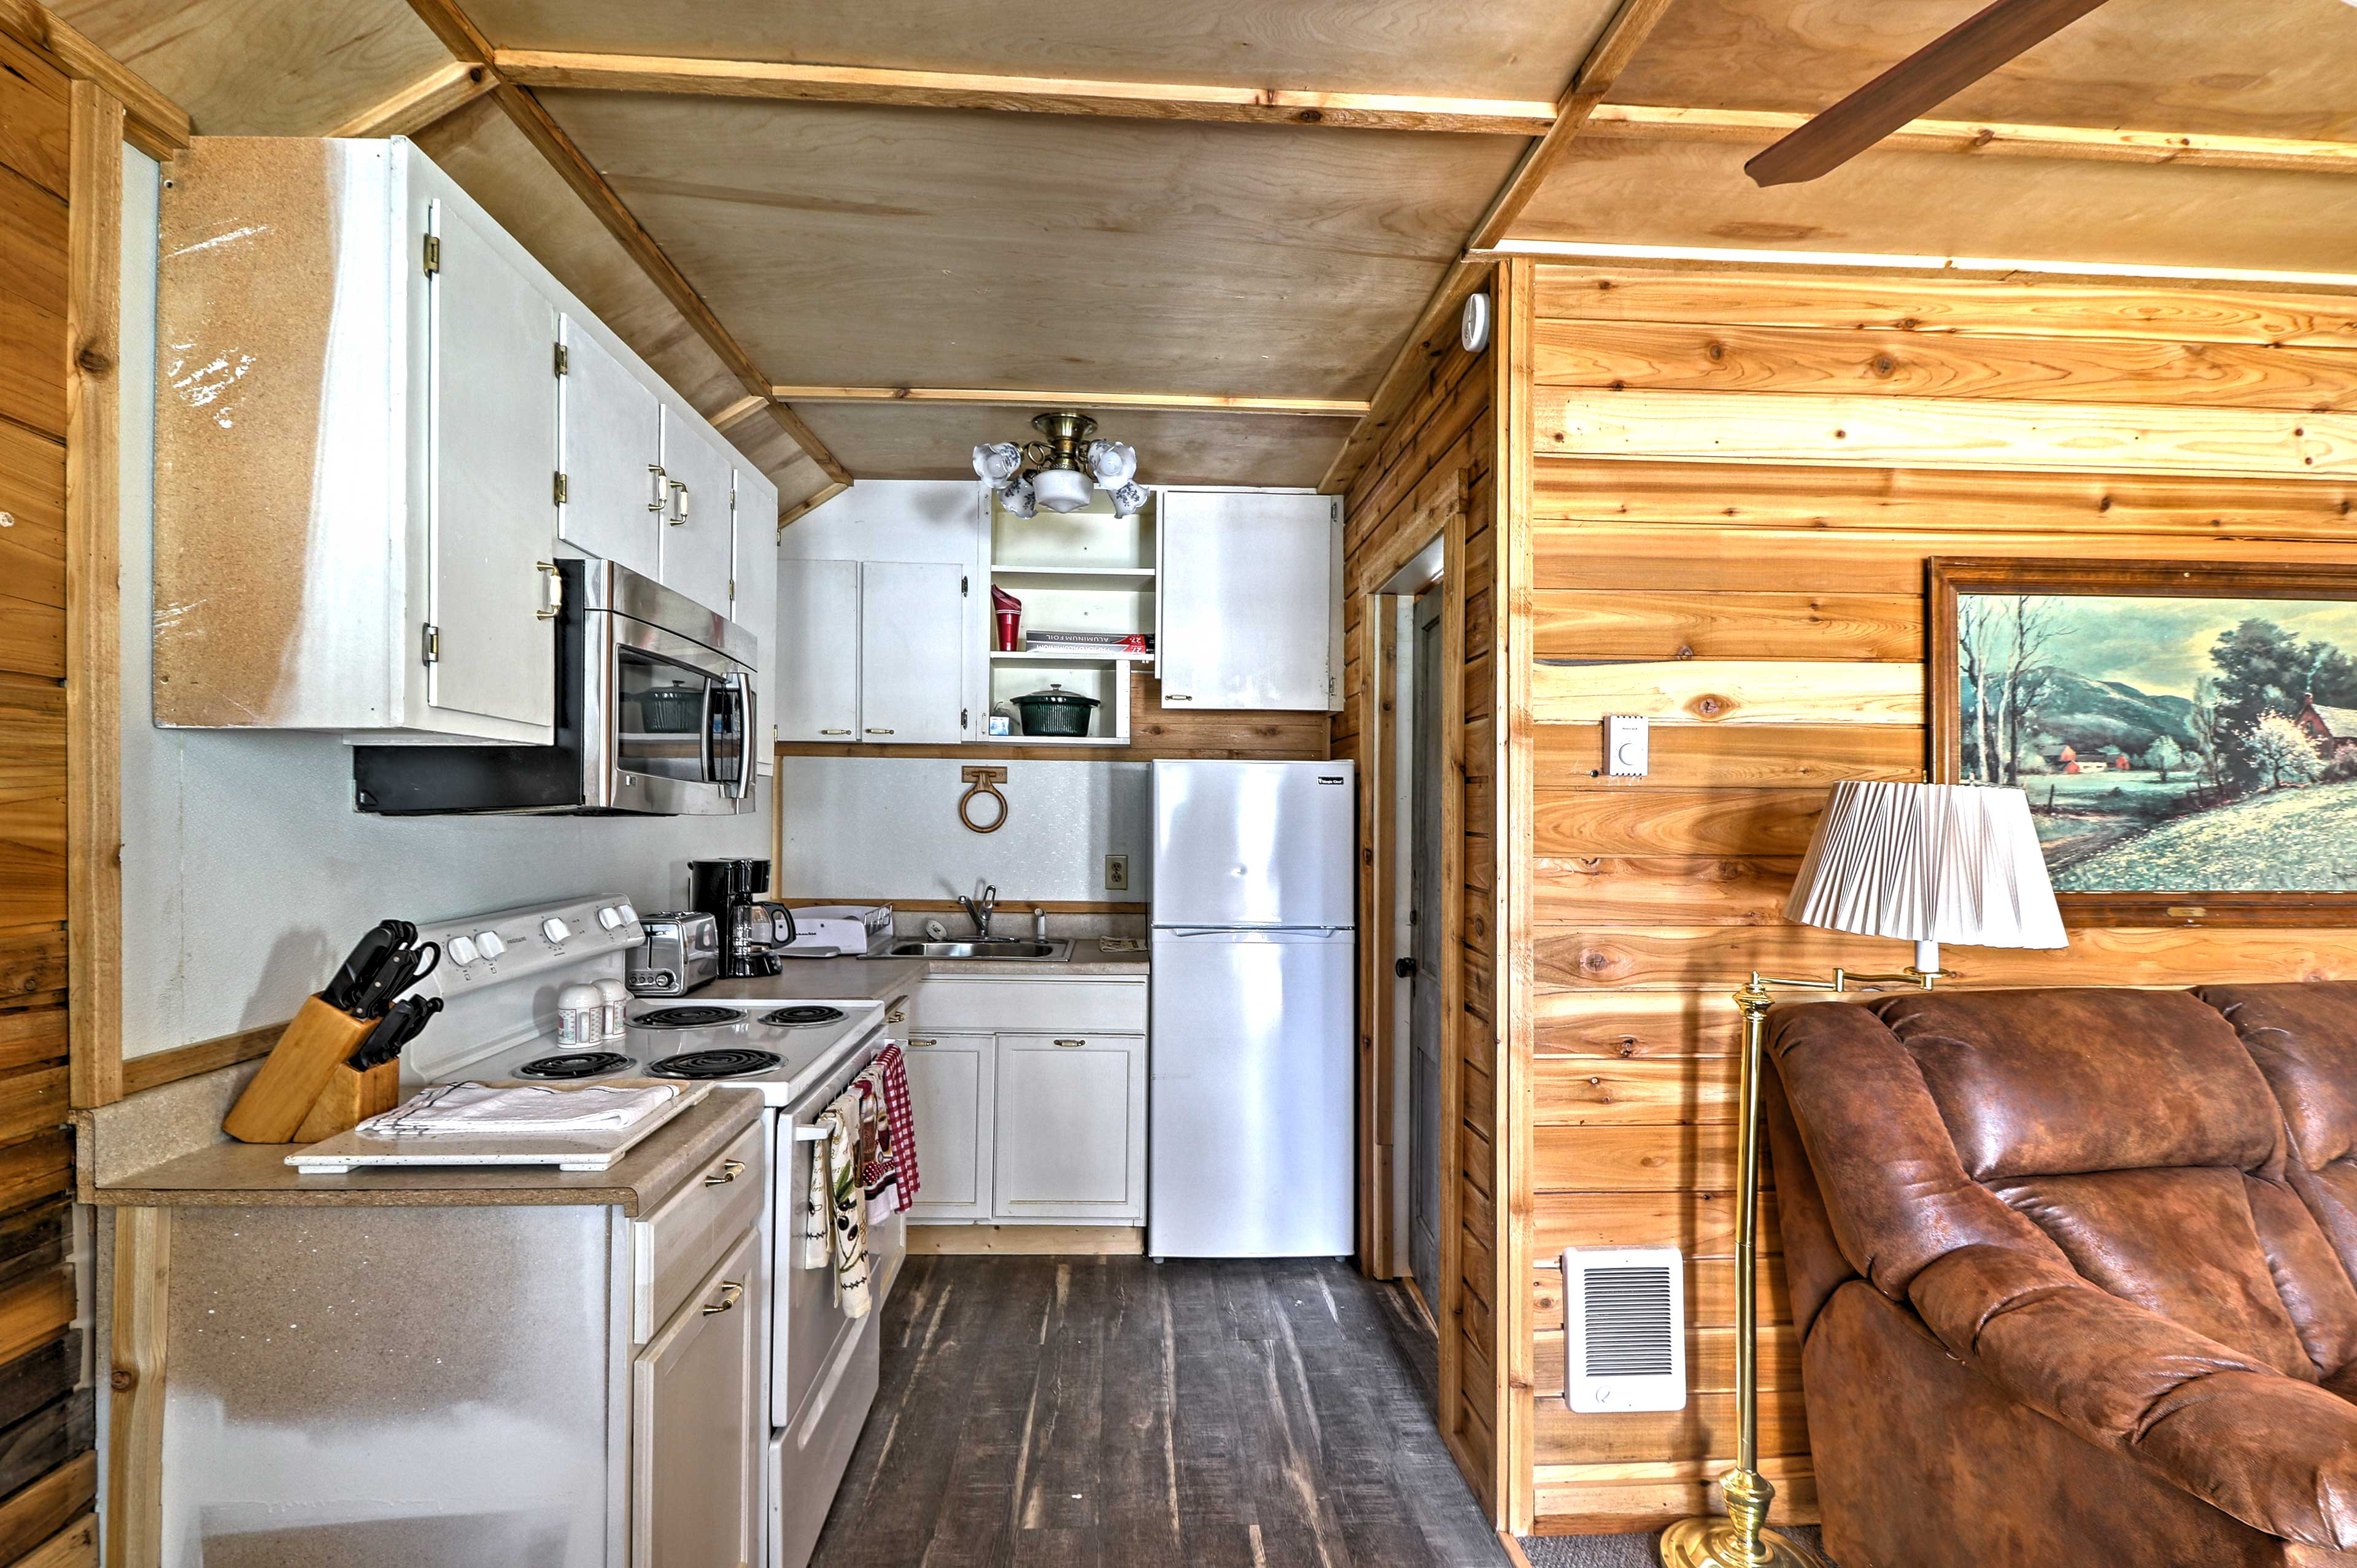 Easily move from kitchen to table or living room in this cozy unit.